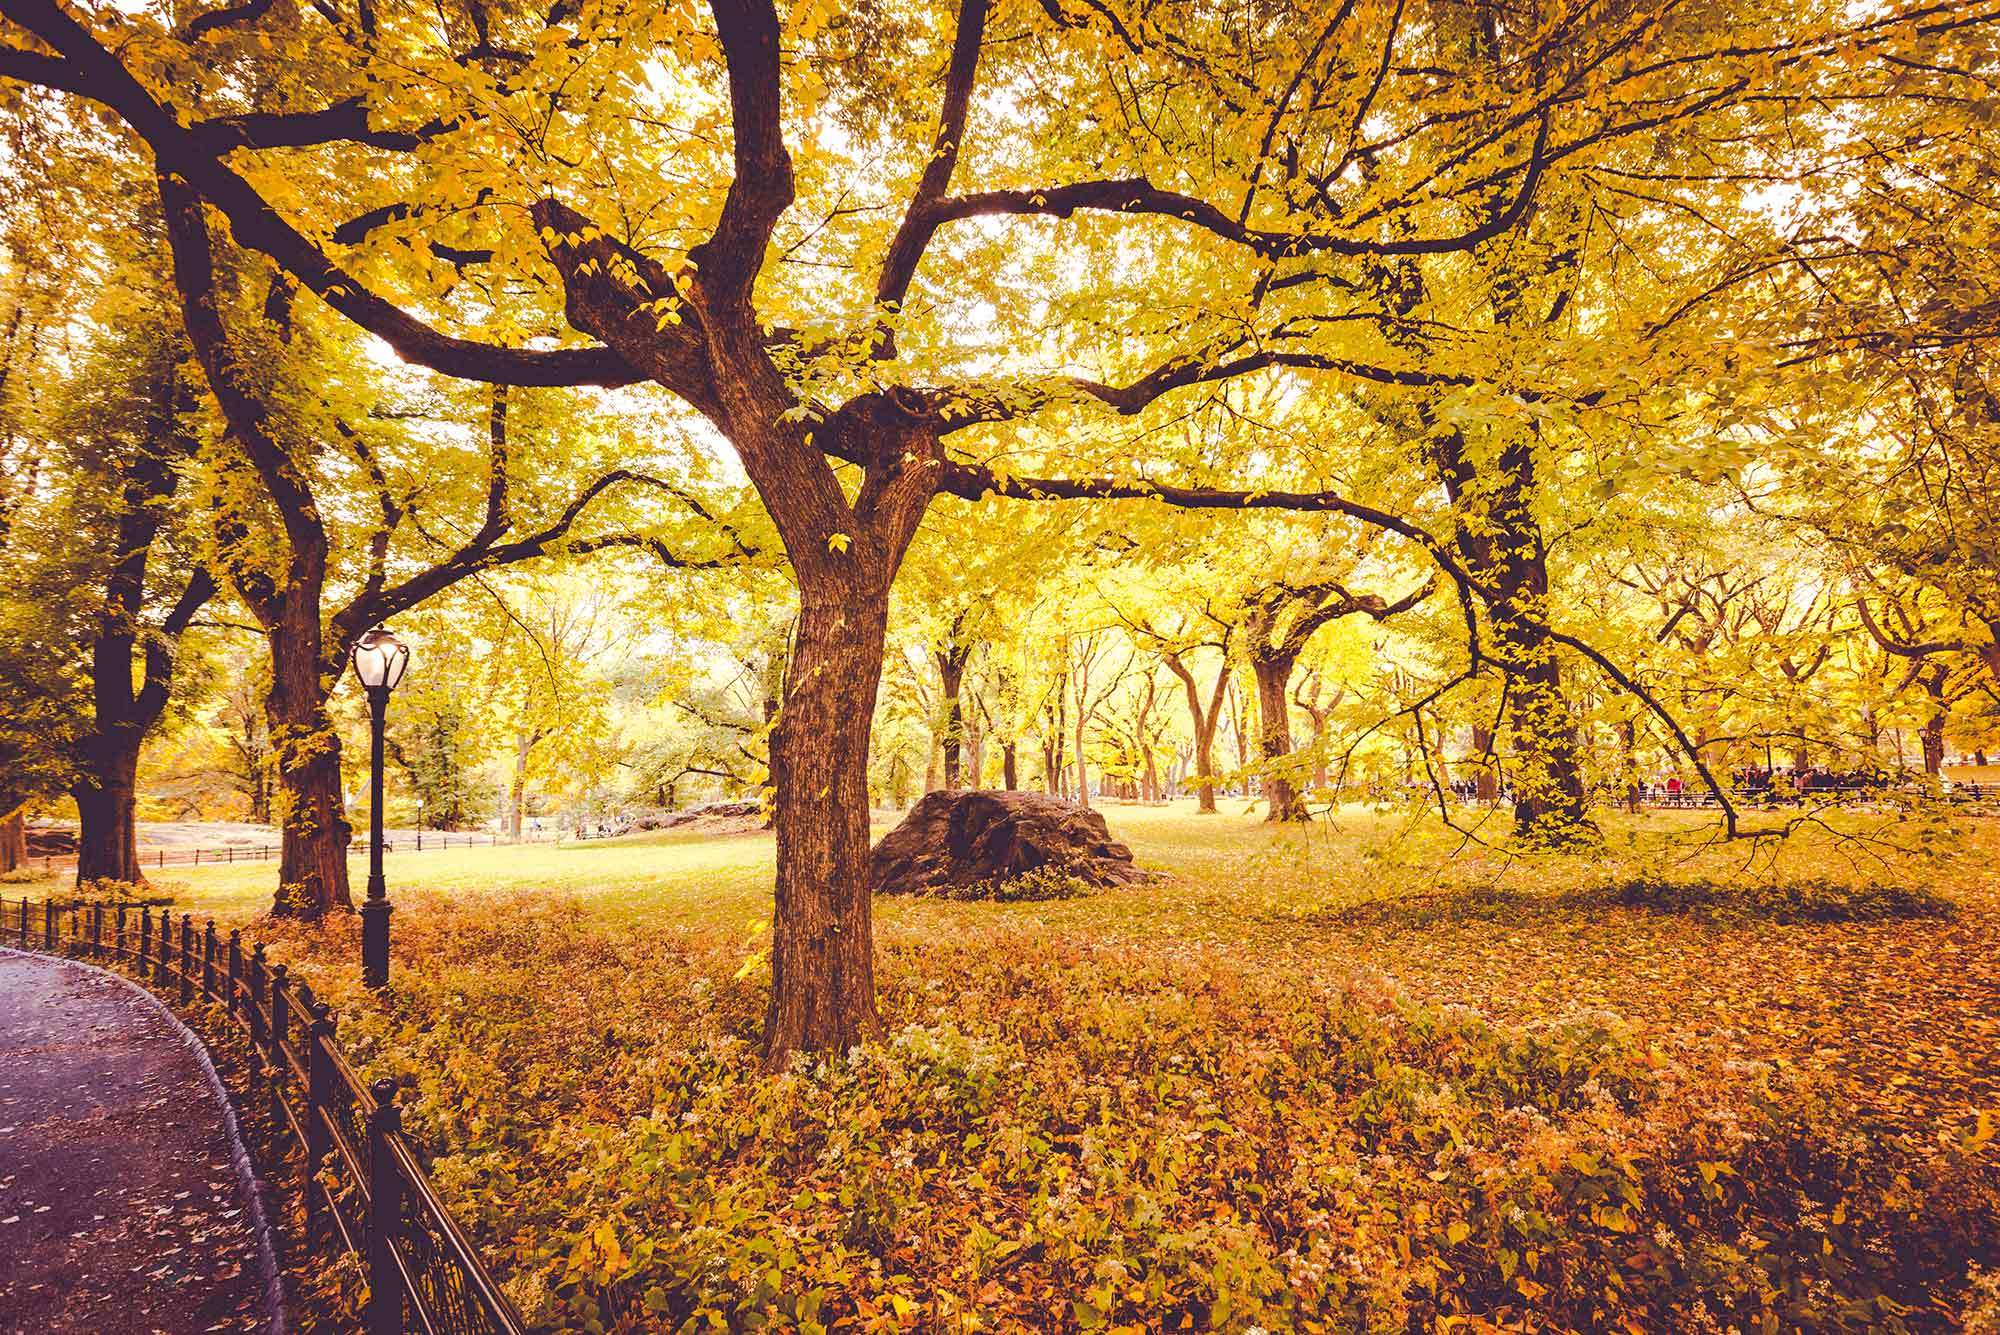 All the leaves are golden in Central Park, New York.